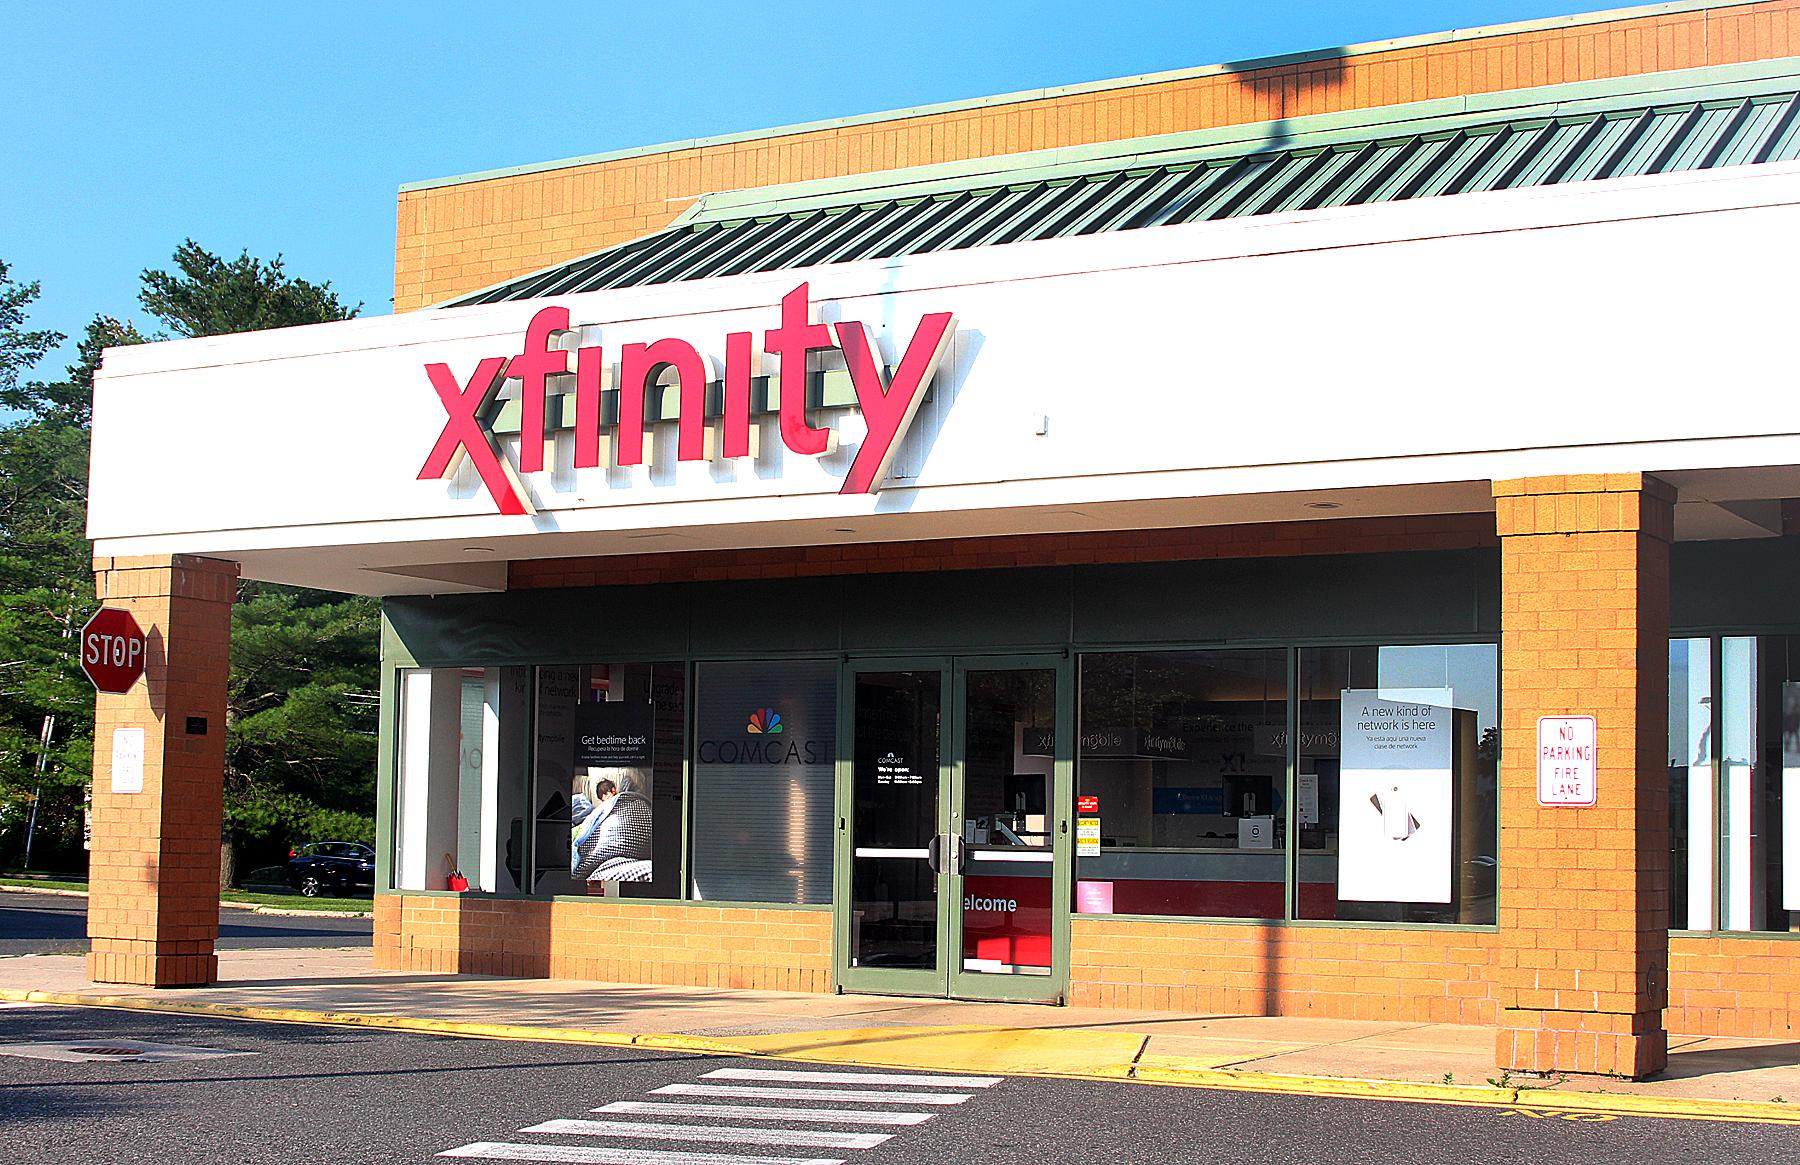 Xfinity Mobile rolls out on retail - Westport News